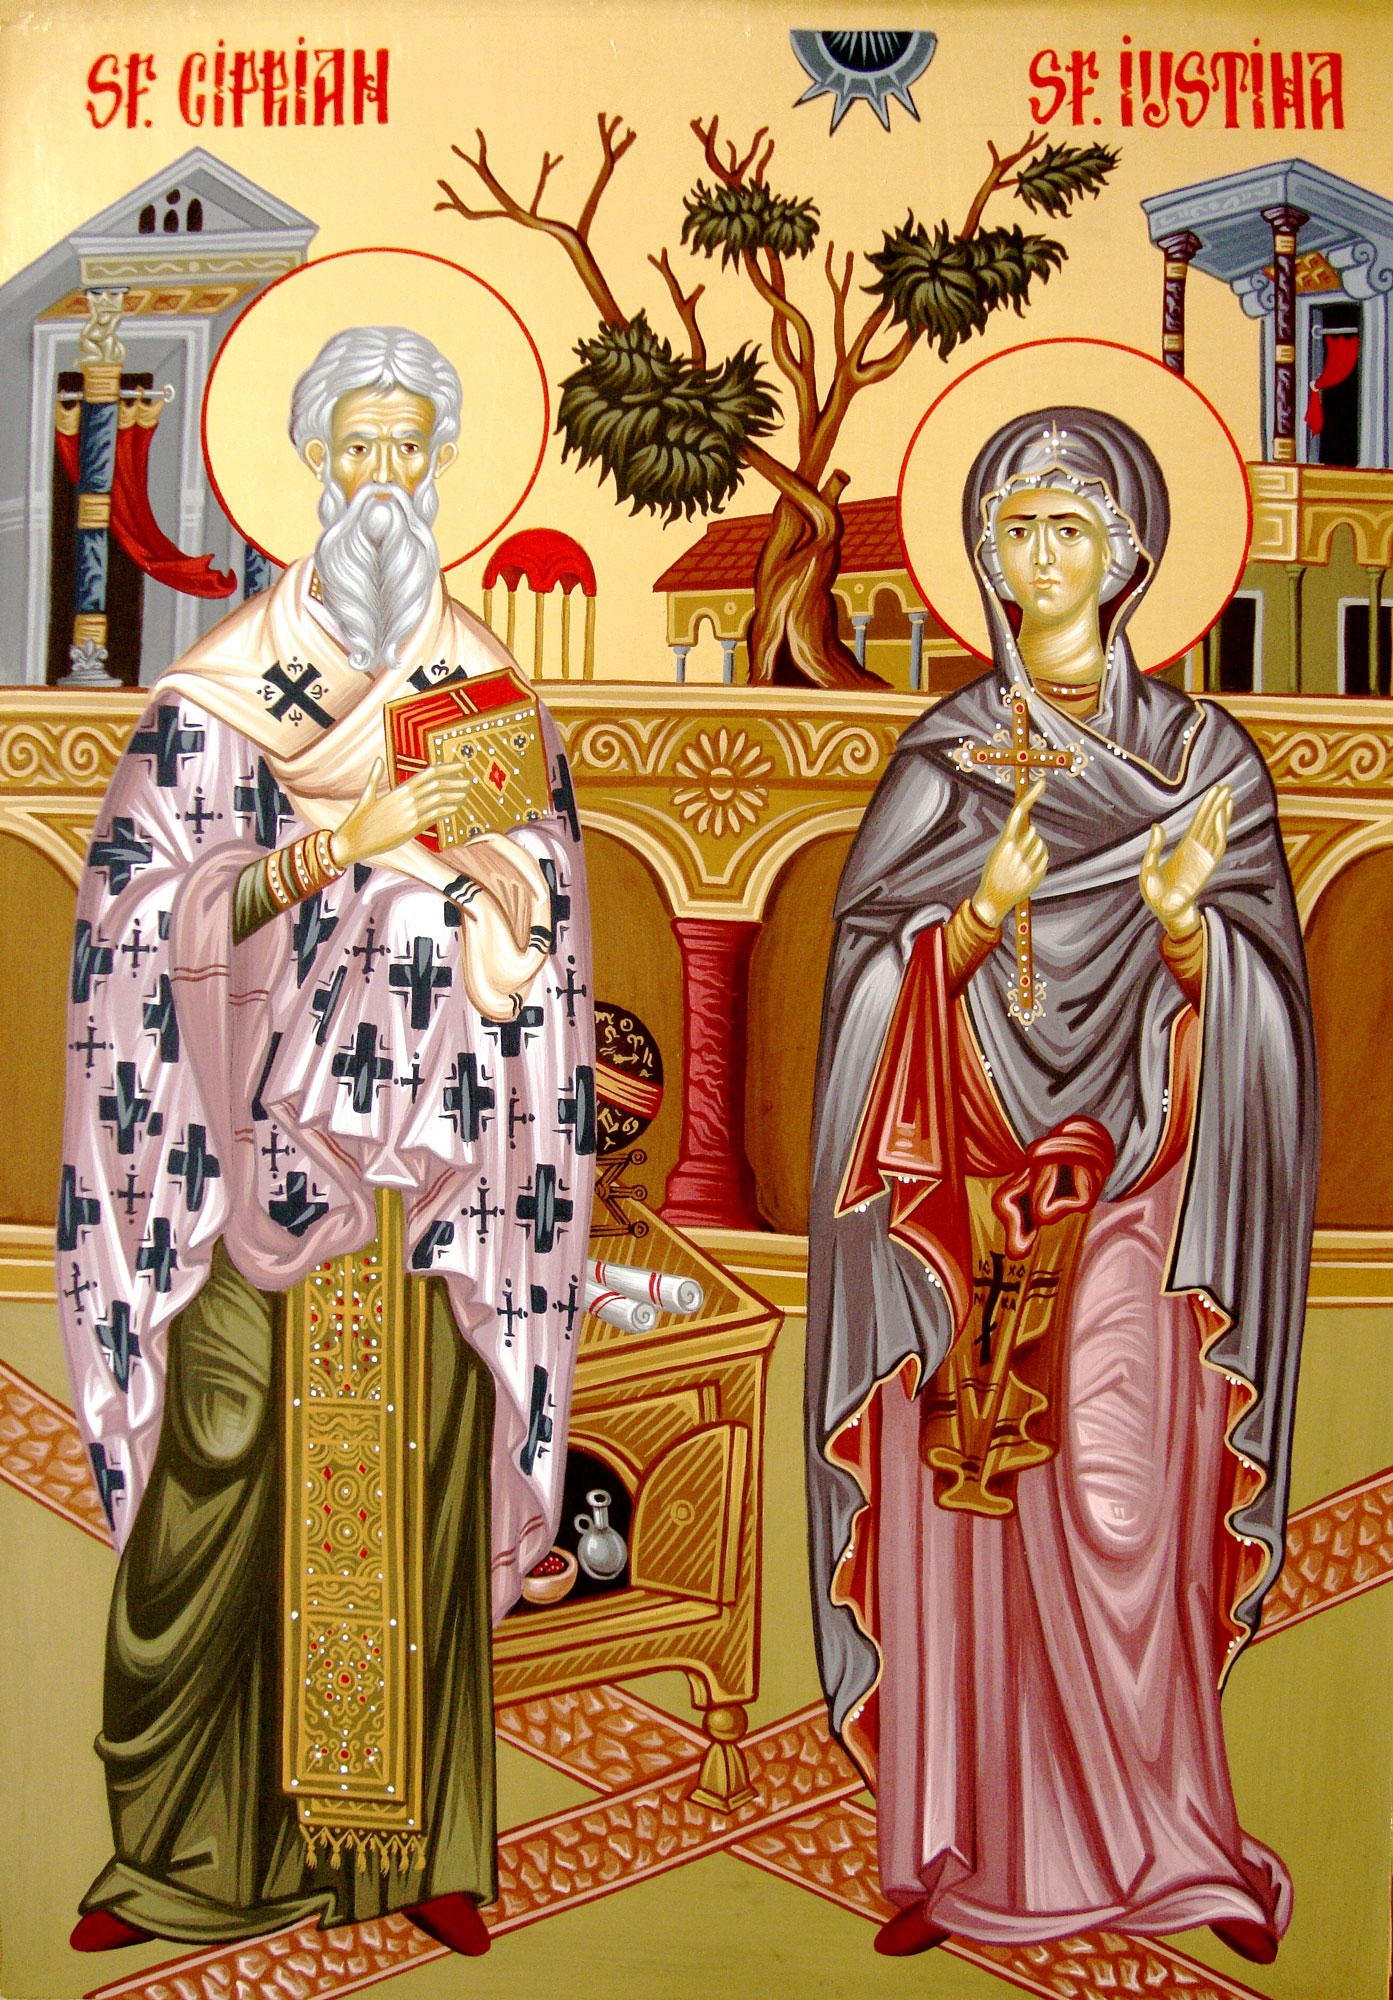 How does the prayer help Cyprian and Ustina